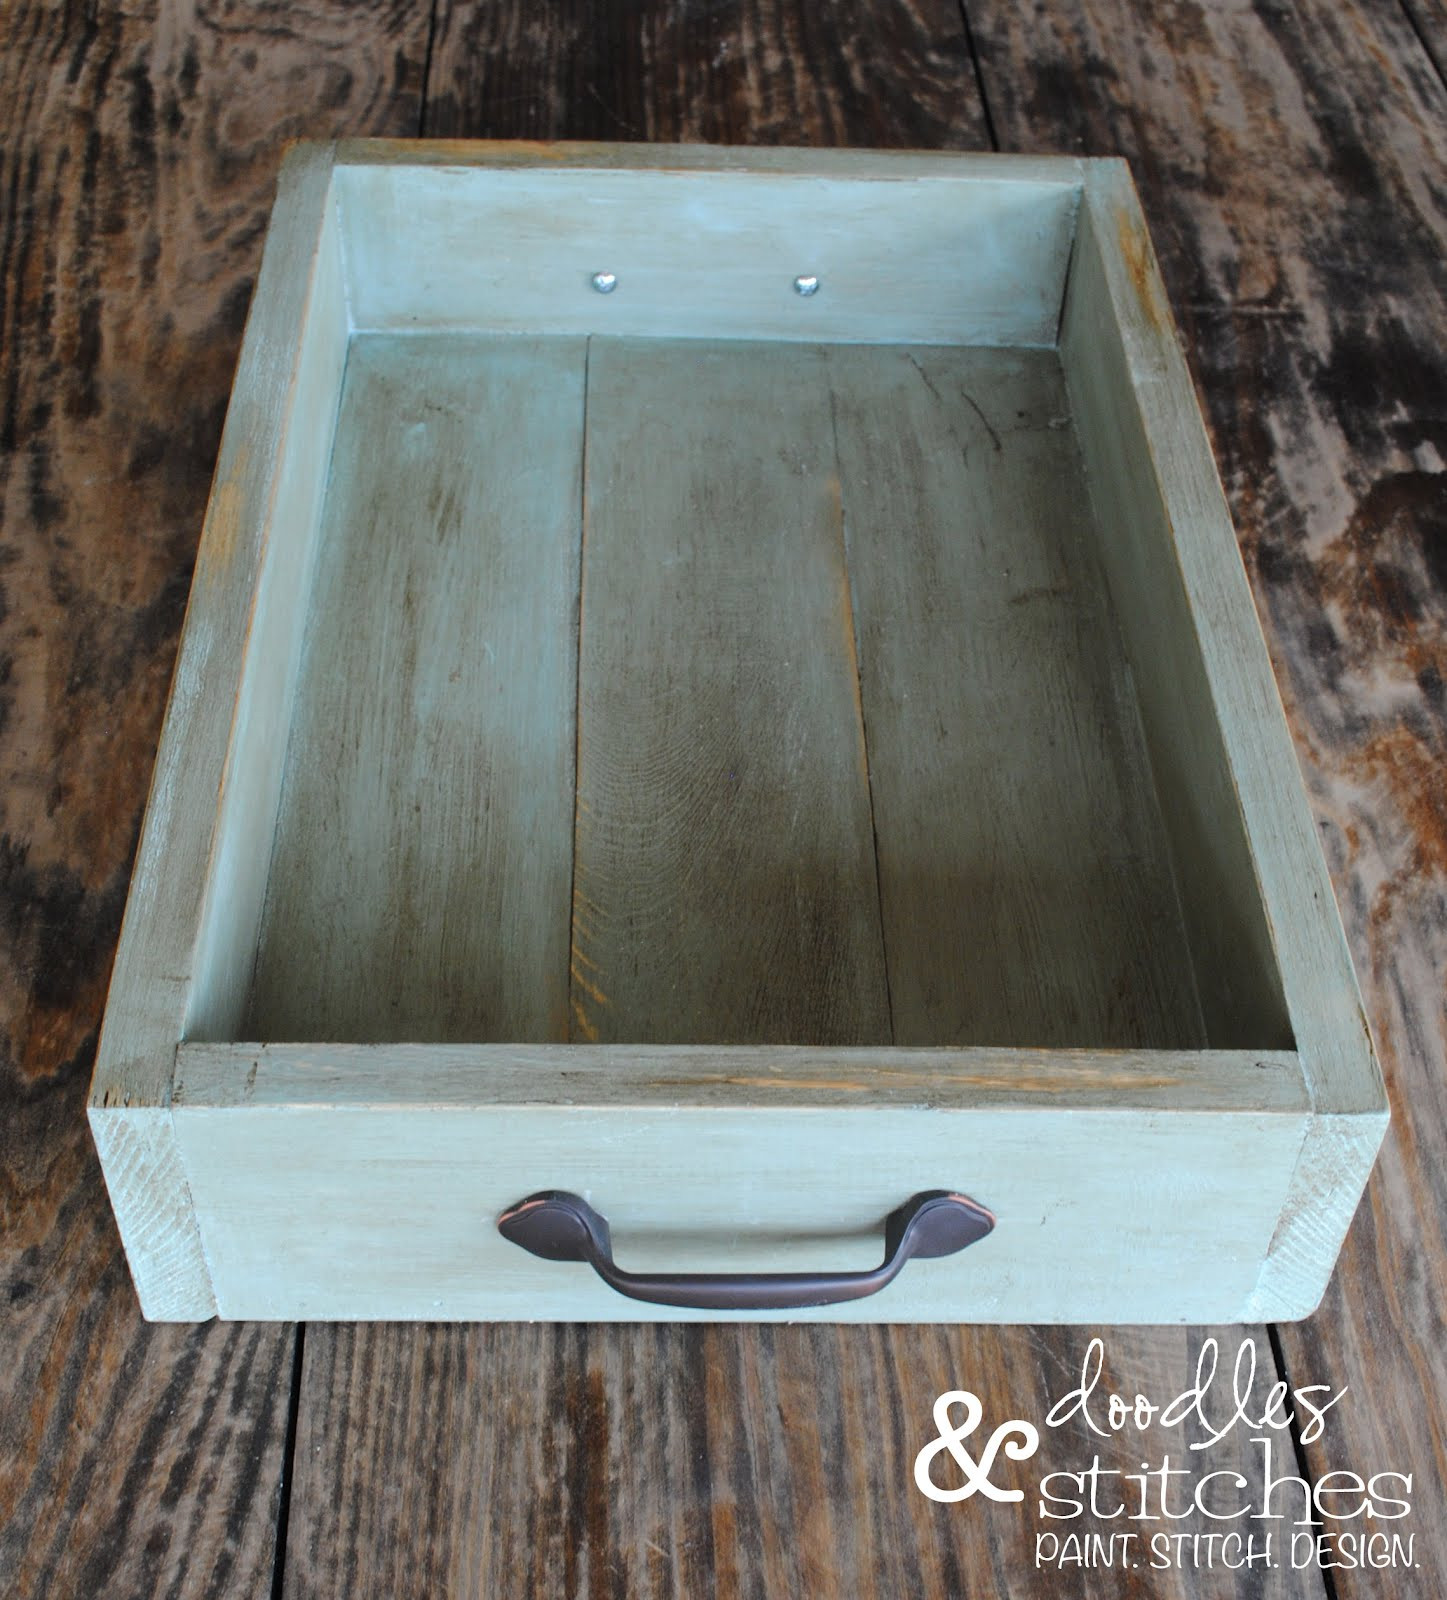 Best ideas about DIY Wood Trays . Save or Pin DIY Wooden Casserole Tray Doodles & Stitches Now.